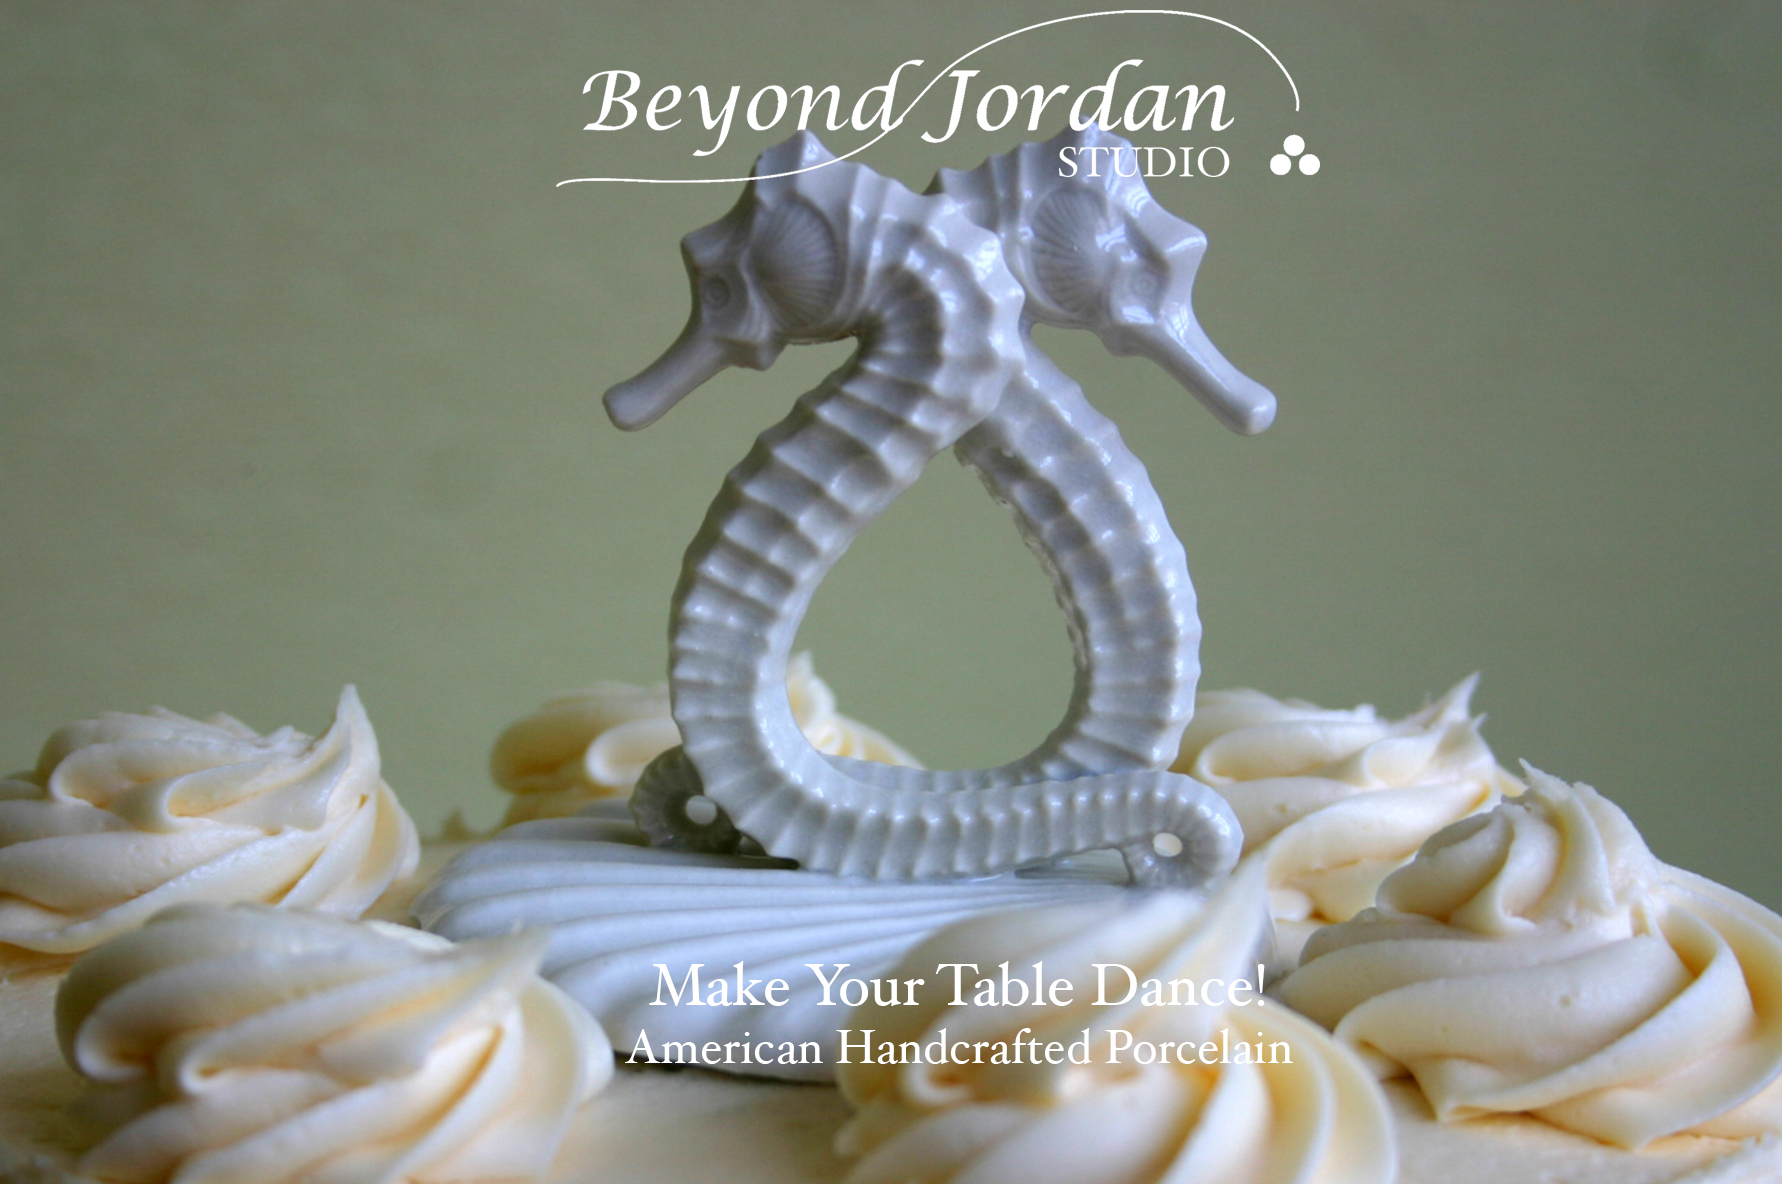 seahorse-cake-topper-ad-on-green-background